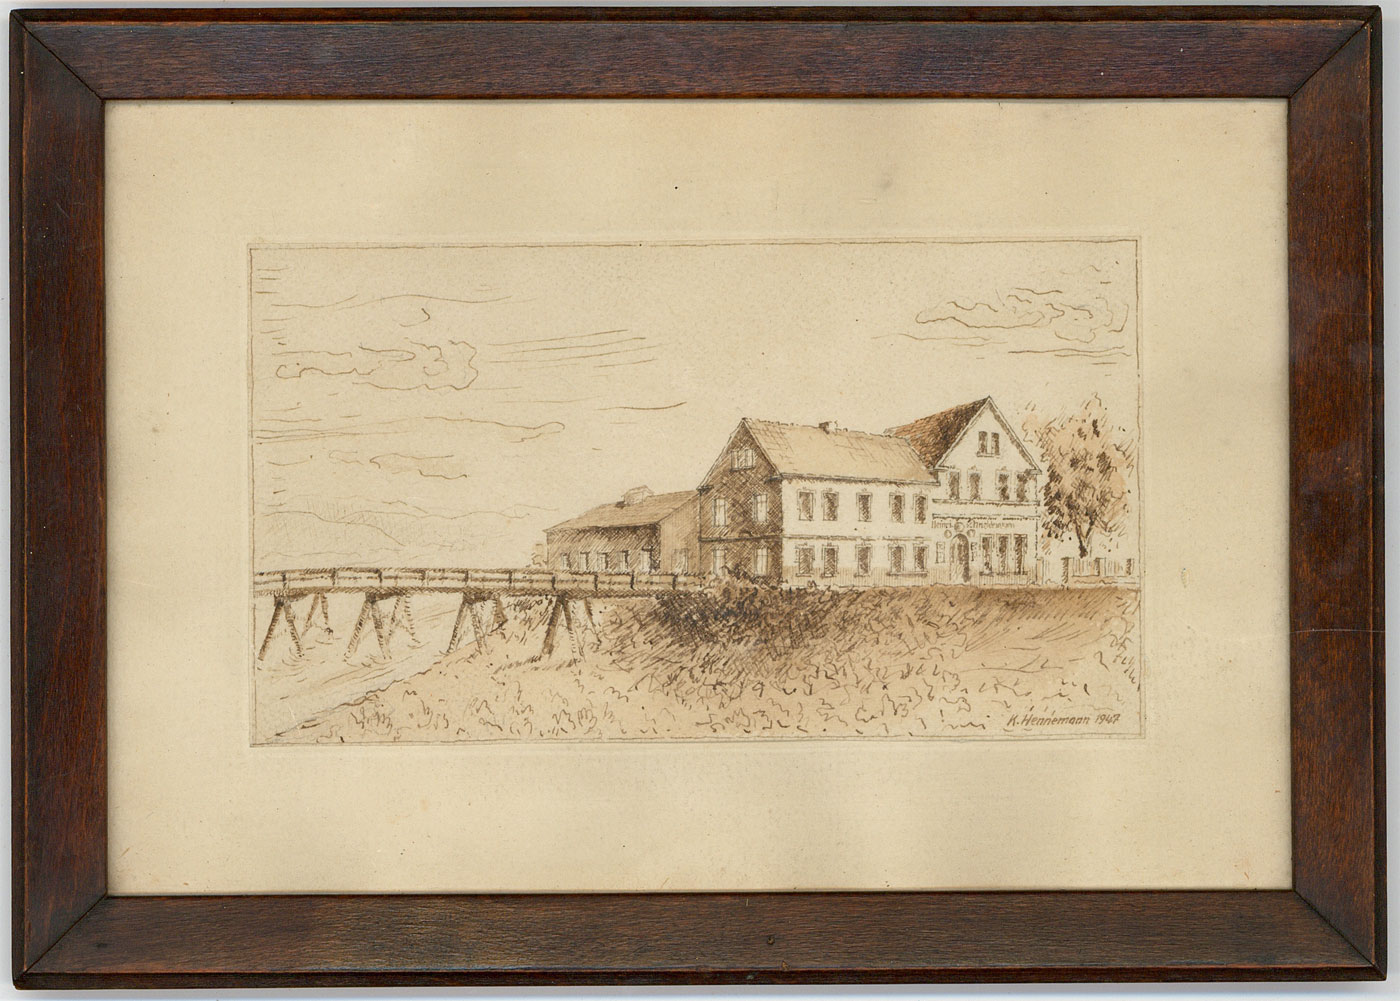 Details about K  Hennemann - 1947 Pen and Ink Drawing, Building and Jetty